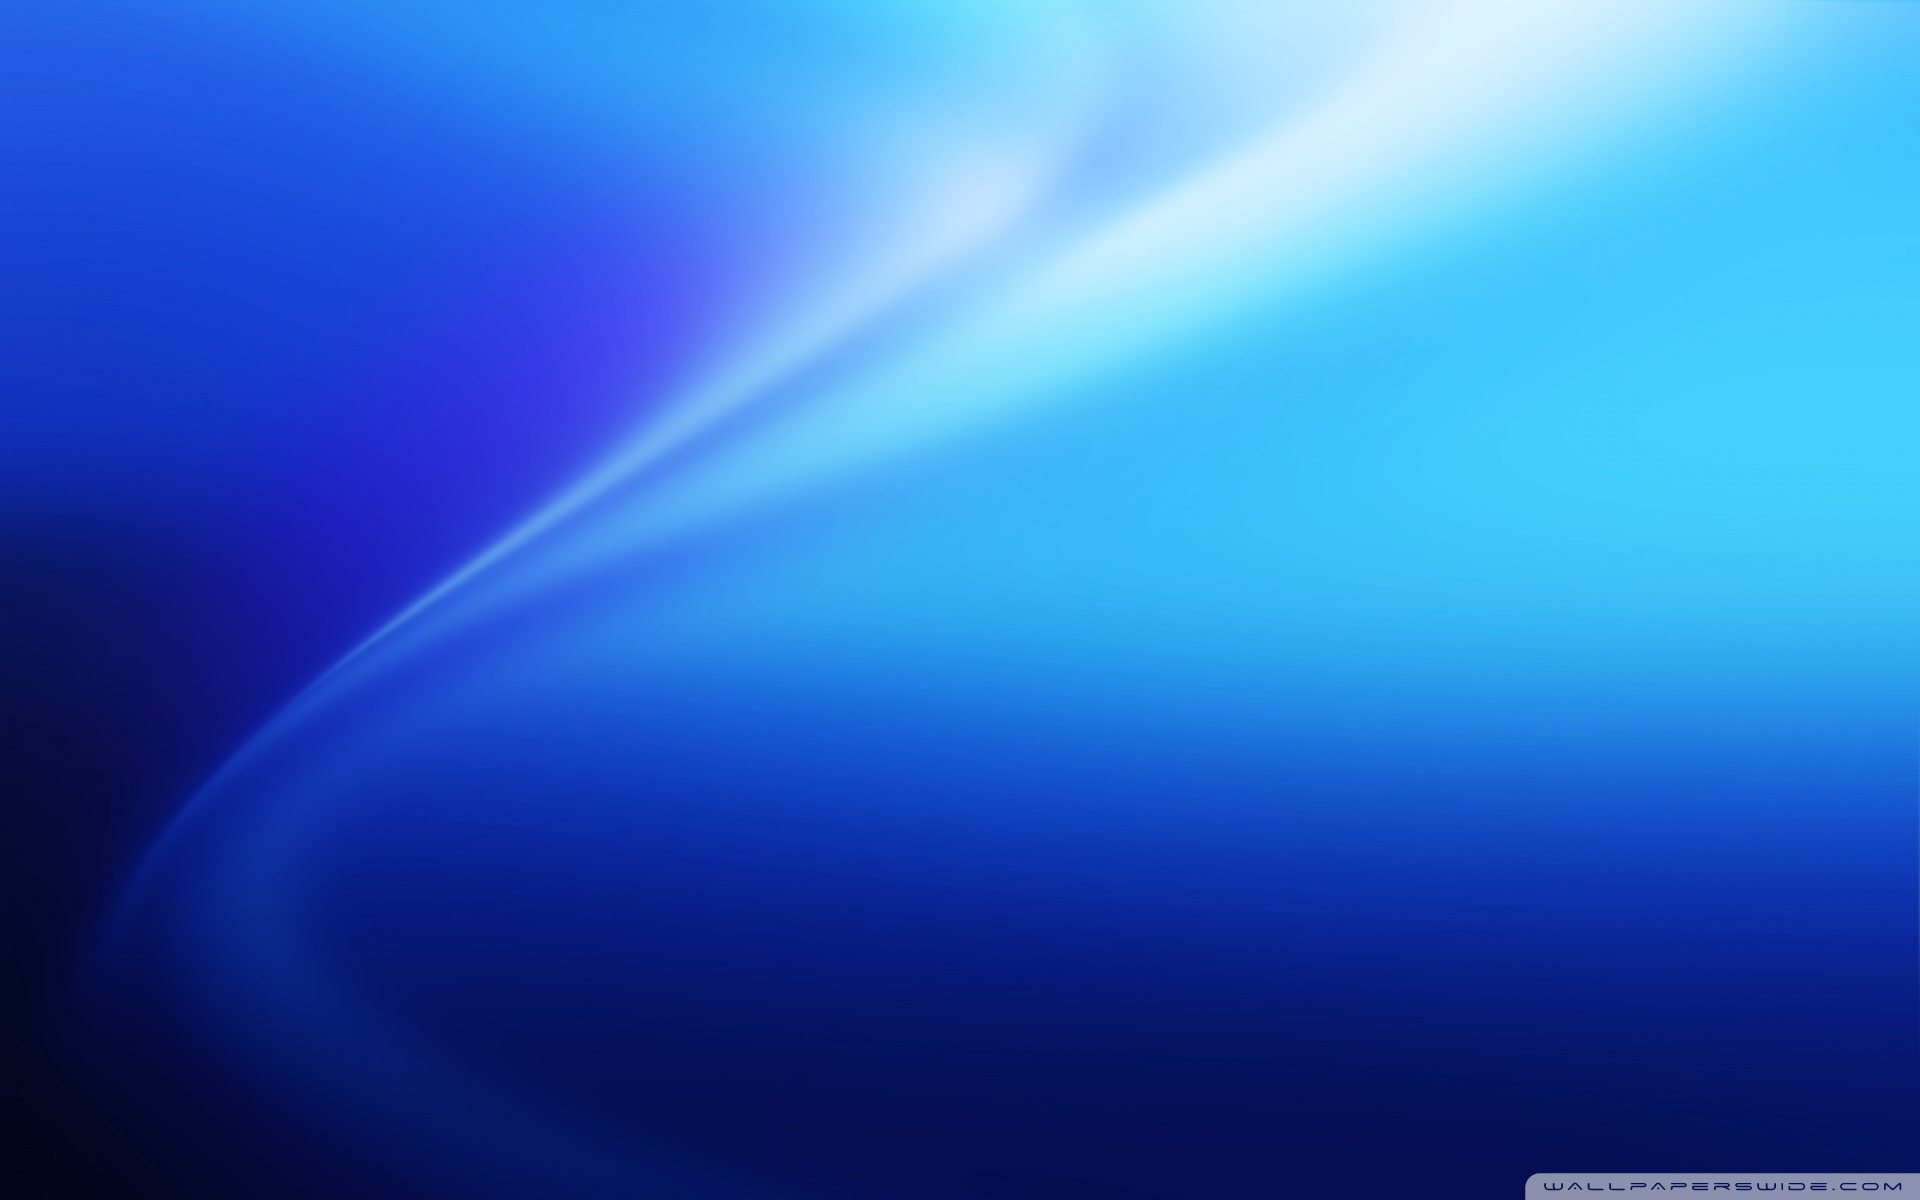 wavy_blue_background_vector_graphic-wallpaper-1920x1200